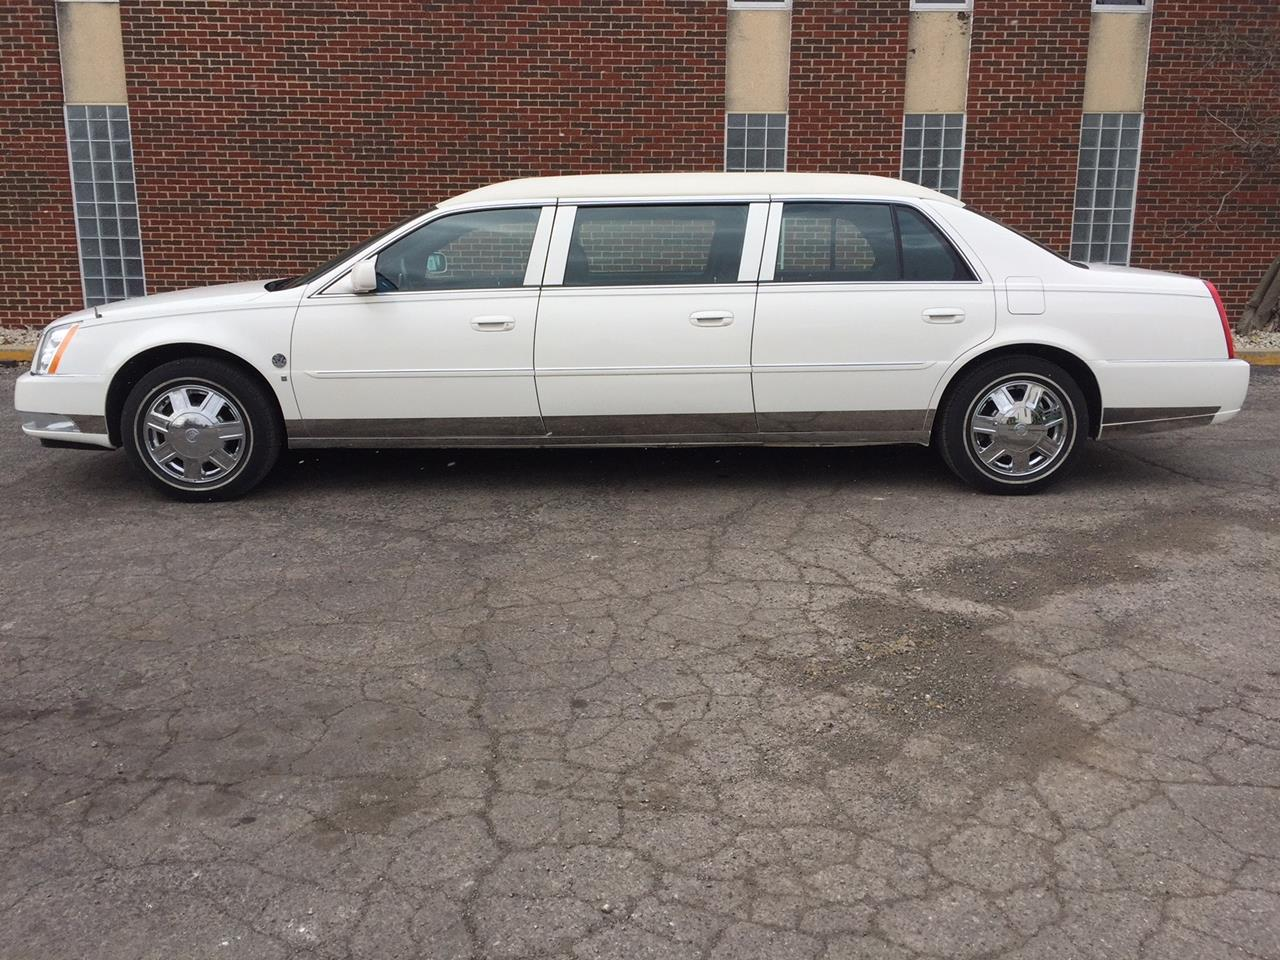 2007 Cadillac Eagle Regency 6 Door Limousine